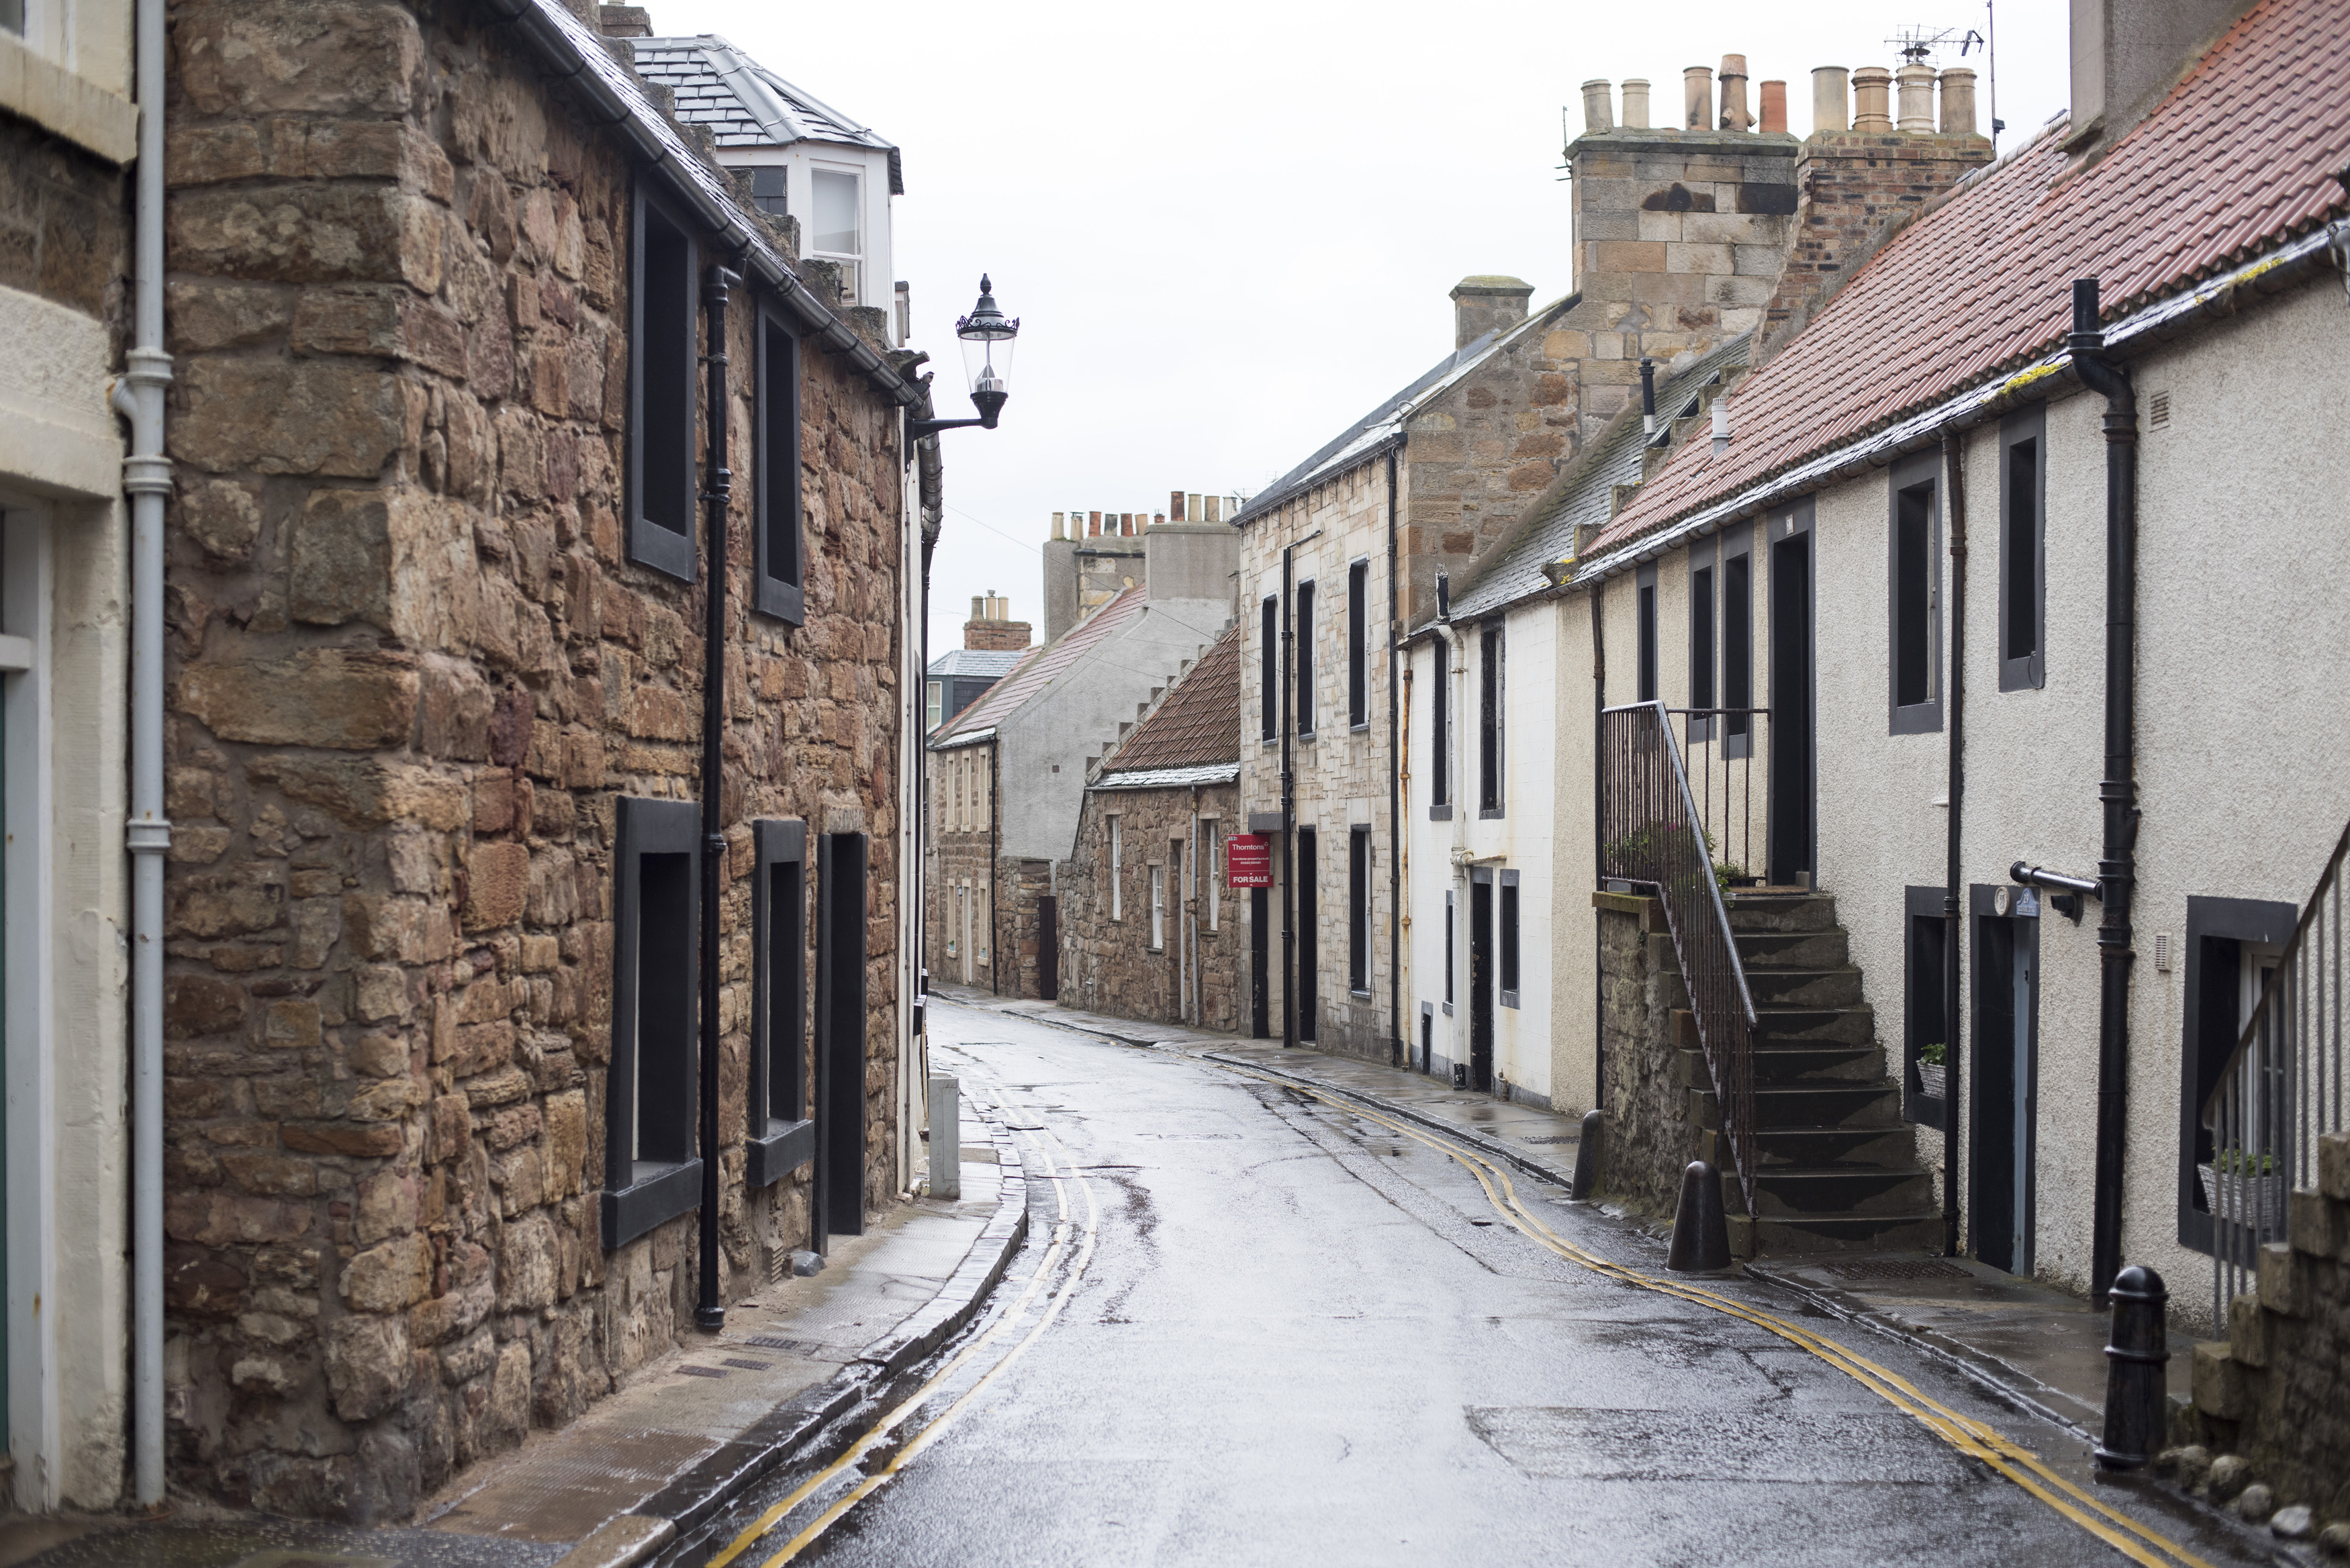 Narrow street in Cellardyke, Scotland lined with quaint cottages on a rainy overcast day